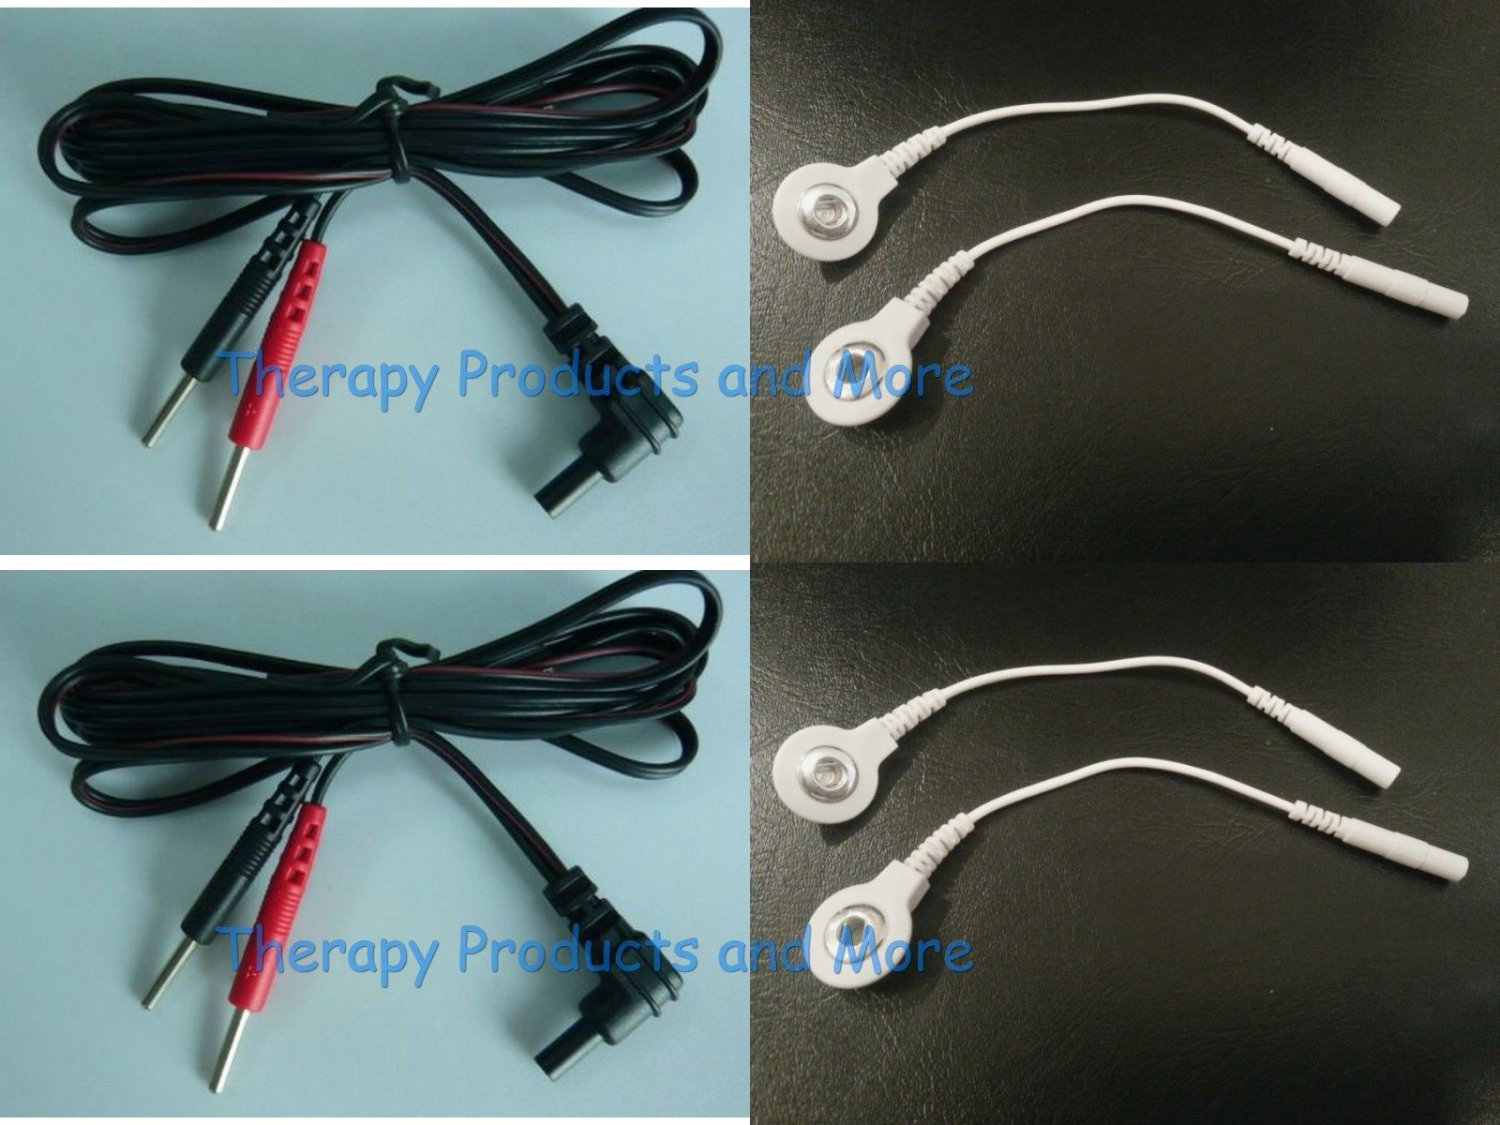 2 Replacement Electrode Cable for AURAWAVE Massagers - Use Snap OR Pin Pads!